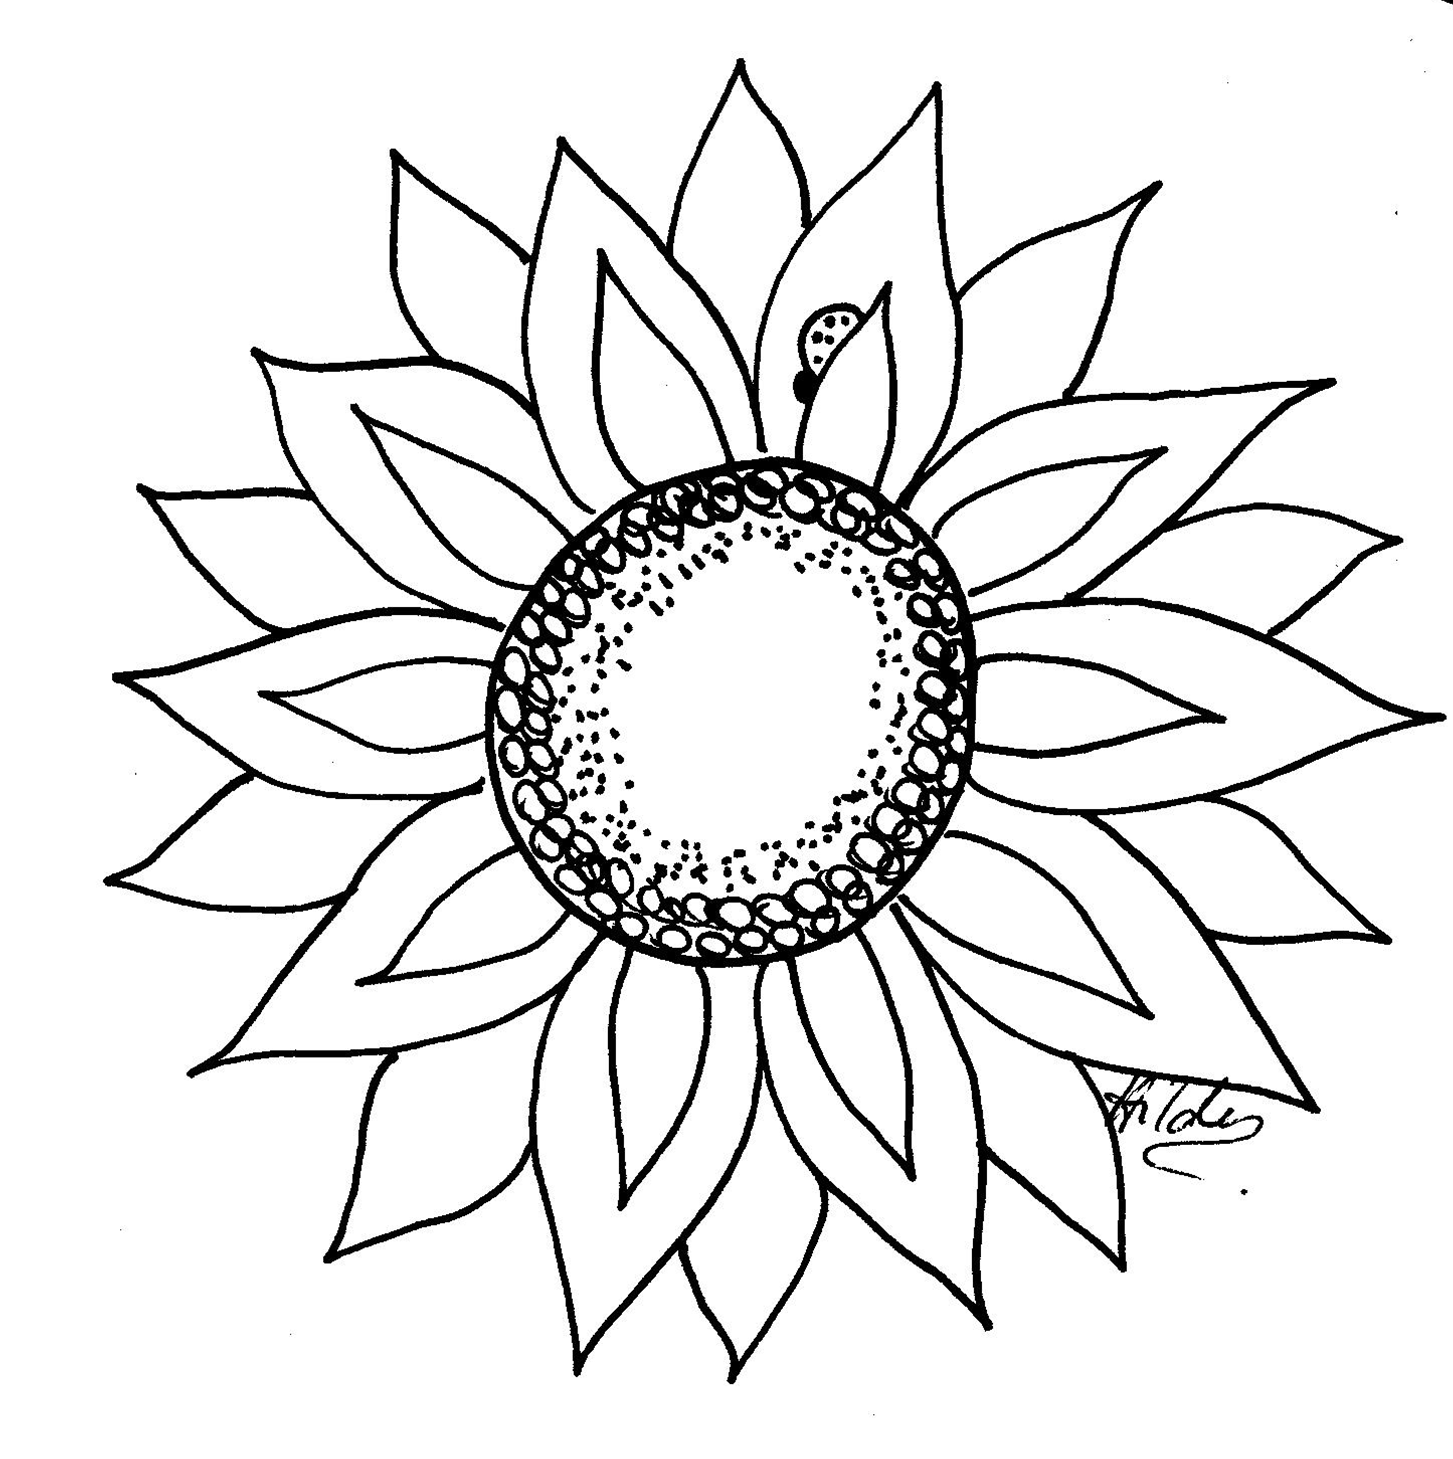 Sunflower Drawing You Illustrations Apr Sep Photoshop Sunflowers